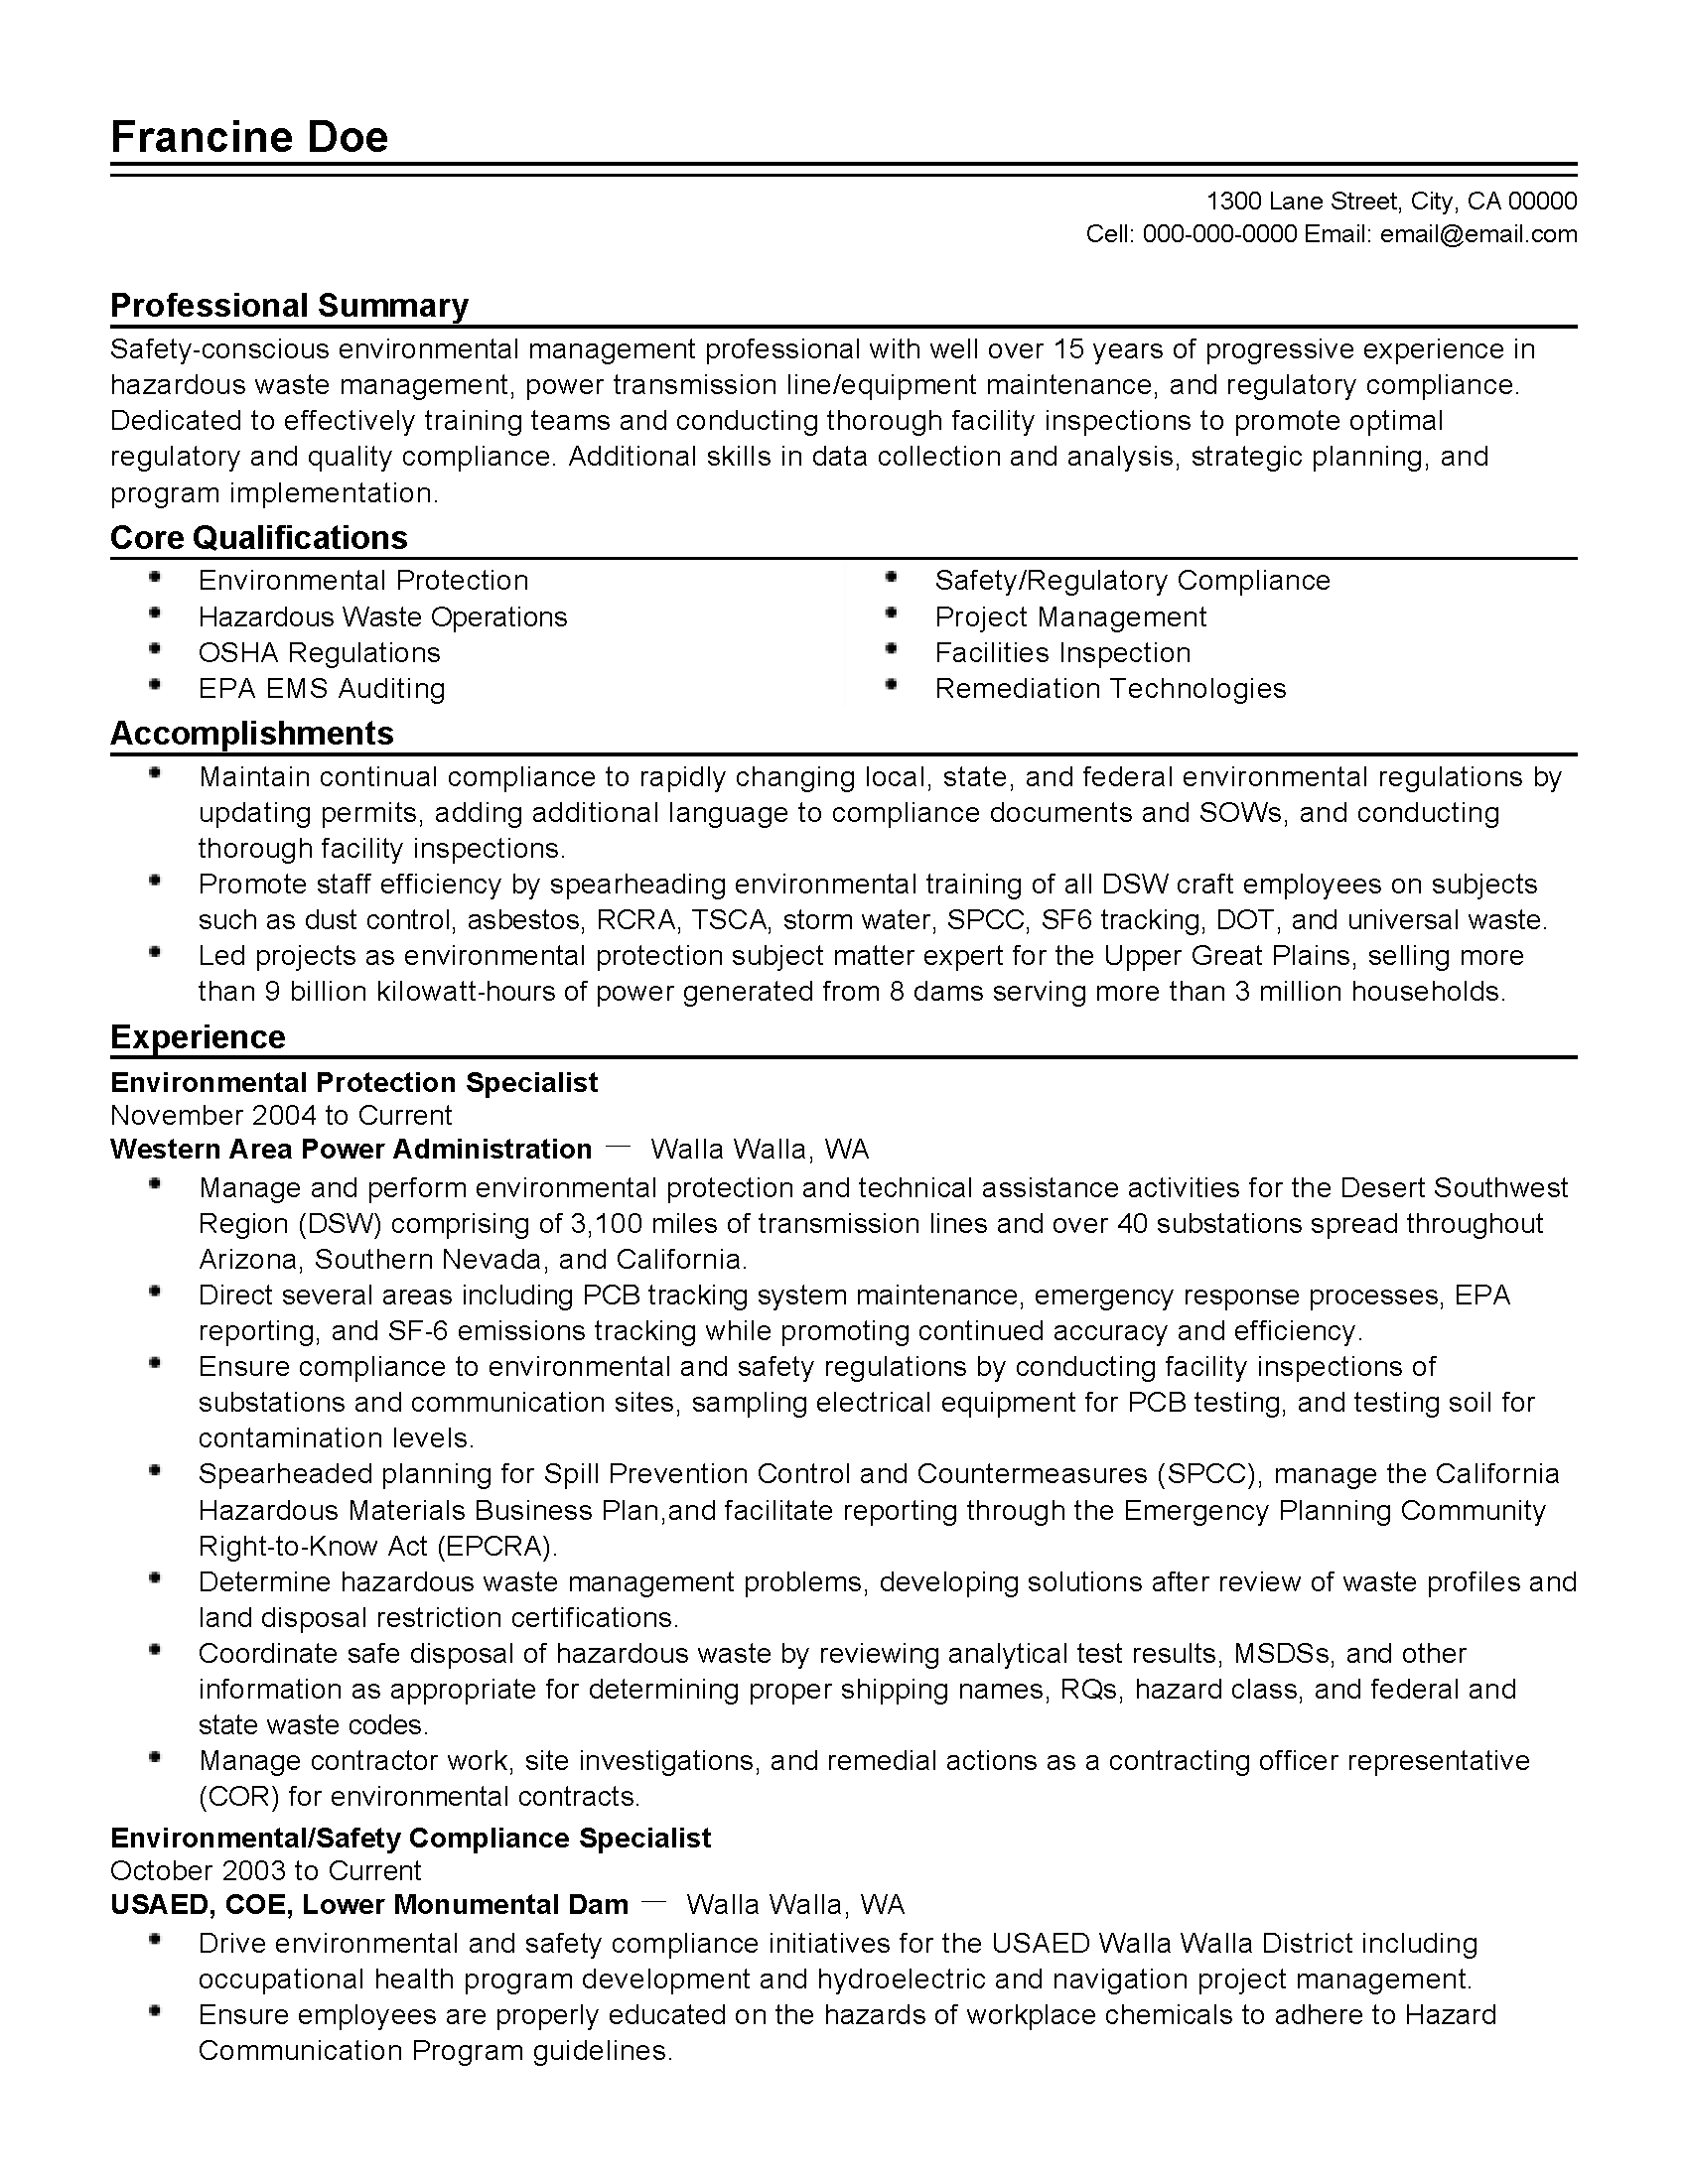 is your resume as powerful as it should be use this environmental protection specialist resume - What Resume Template Should I Use